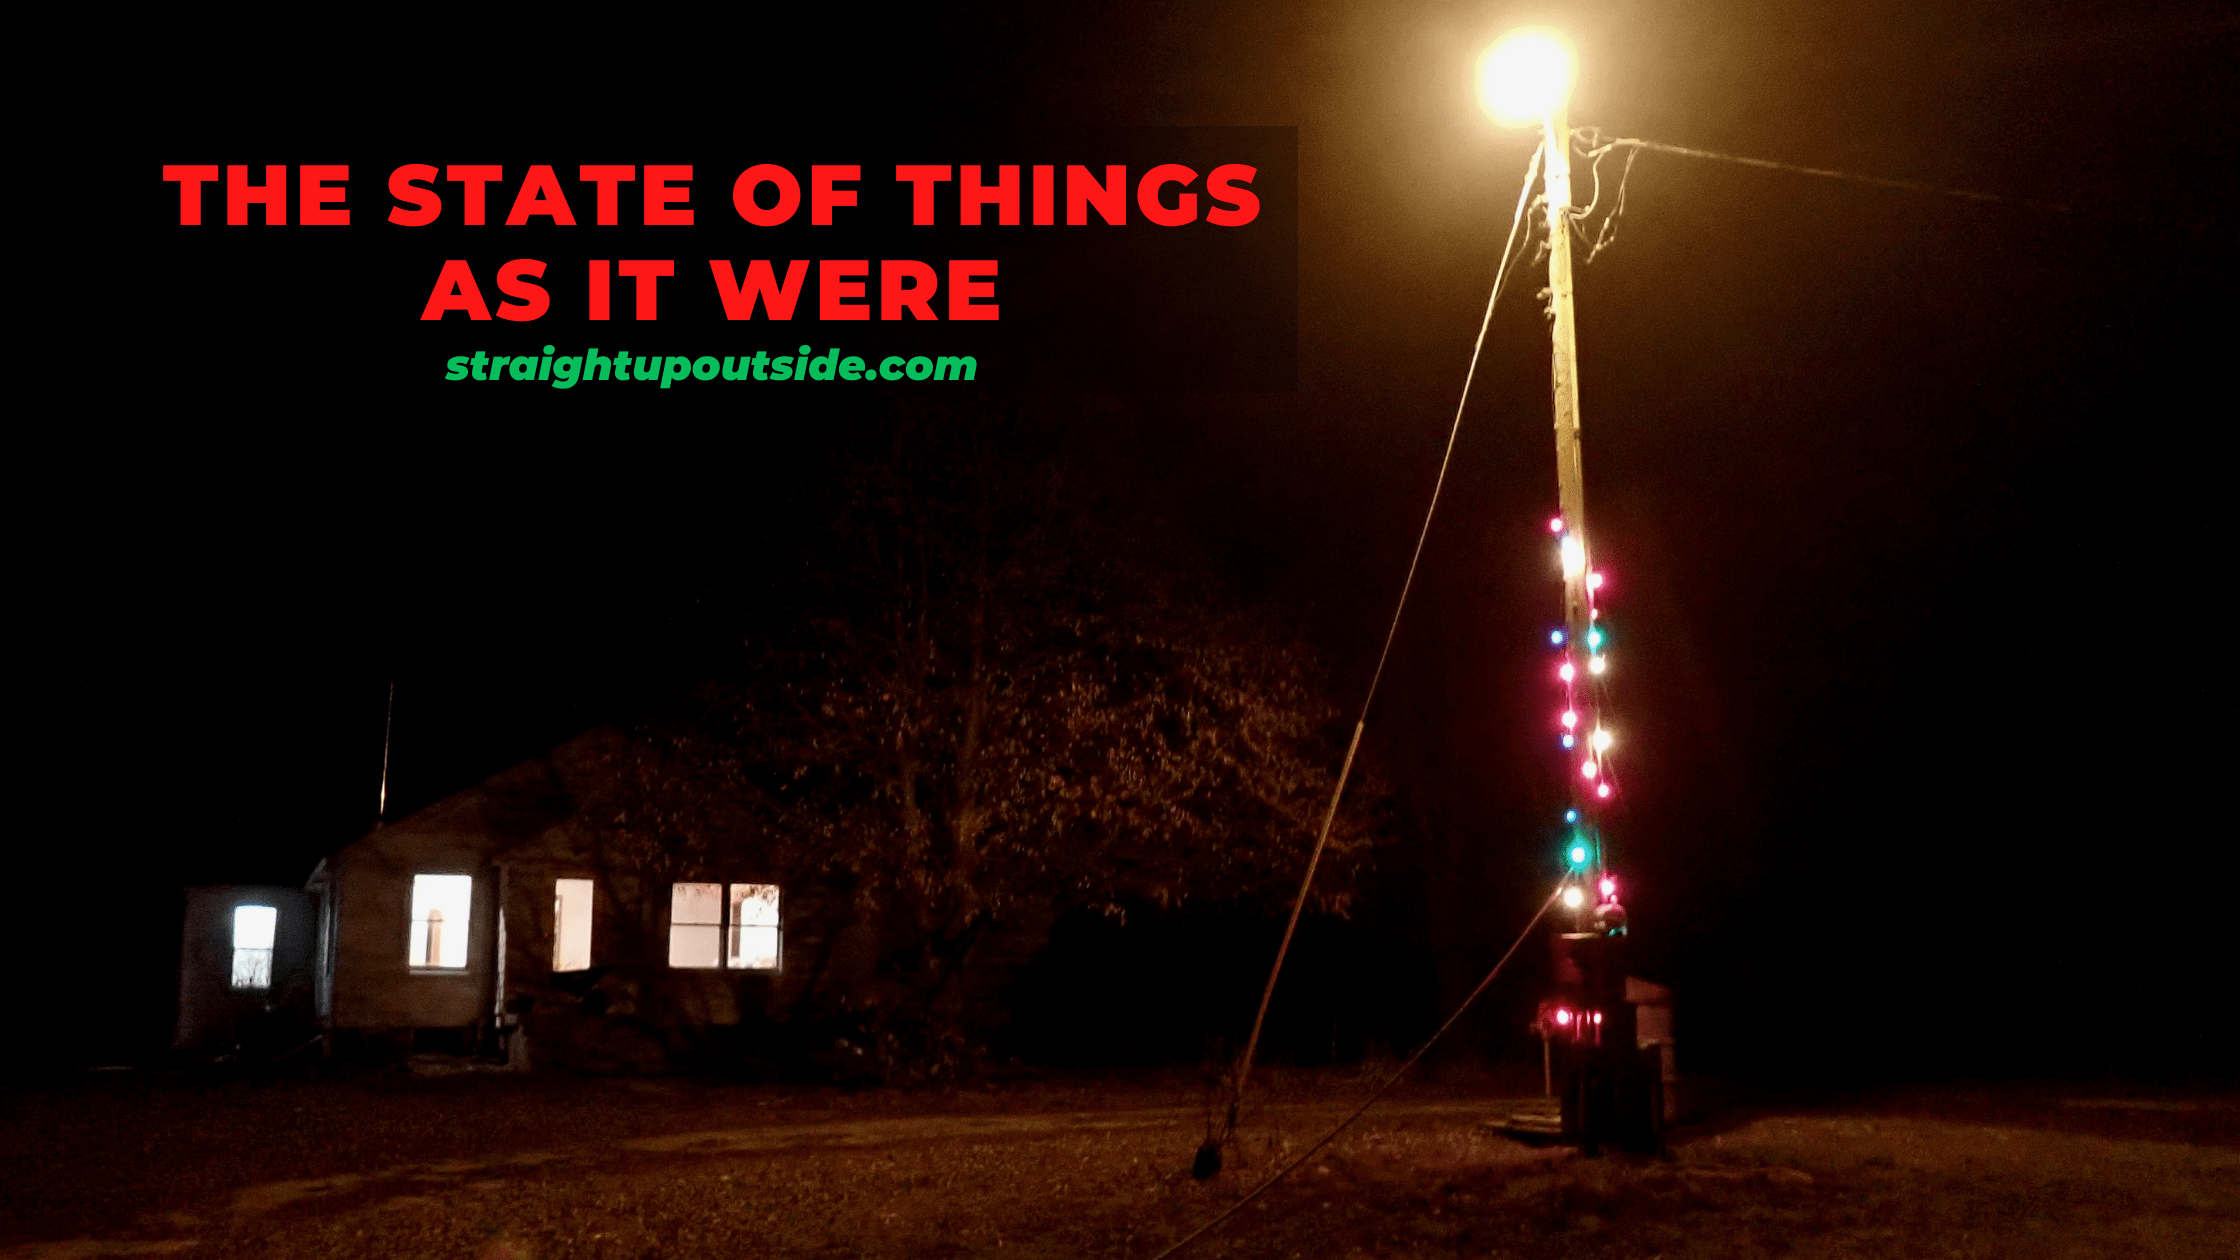 The State of Things As It Were